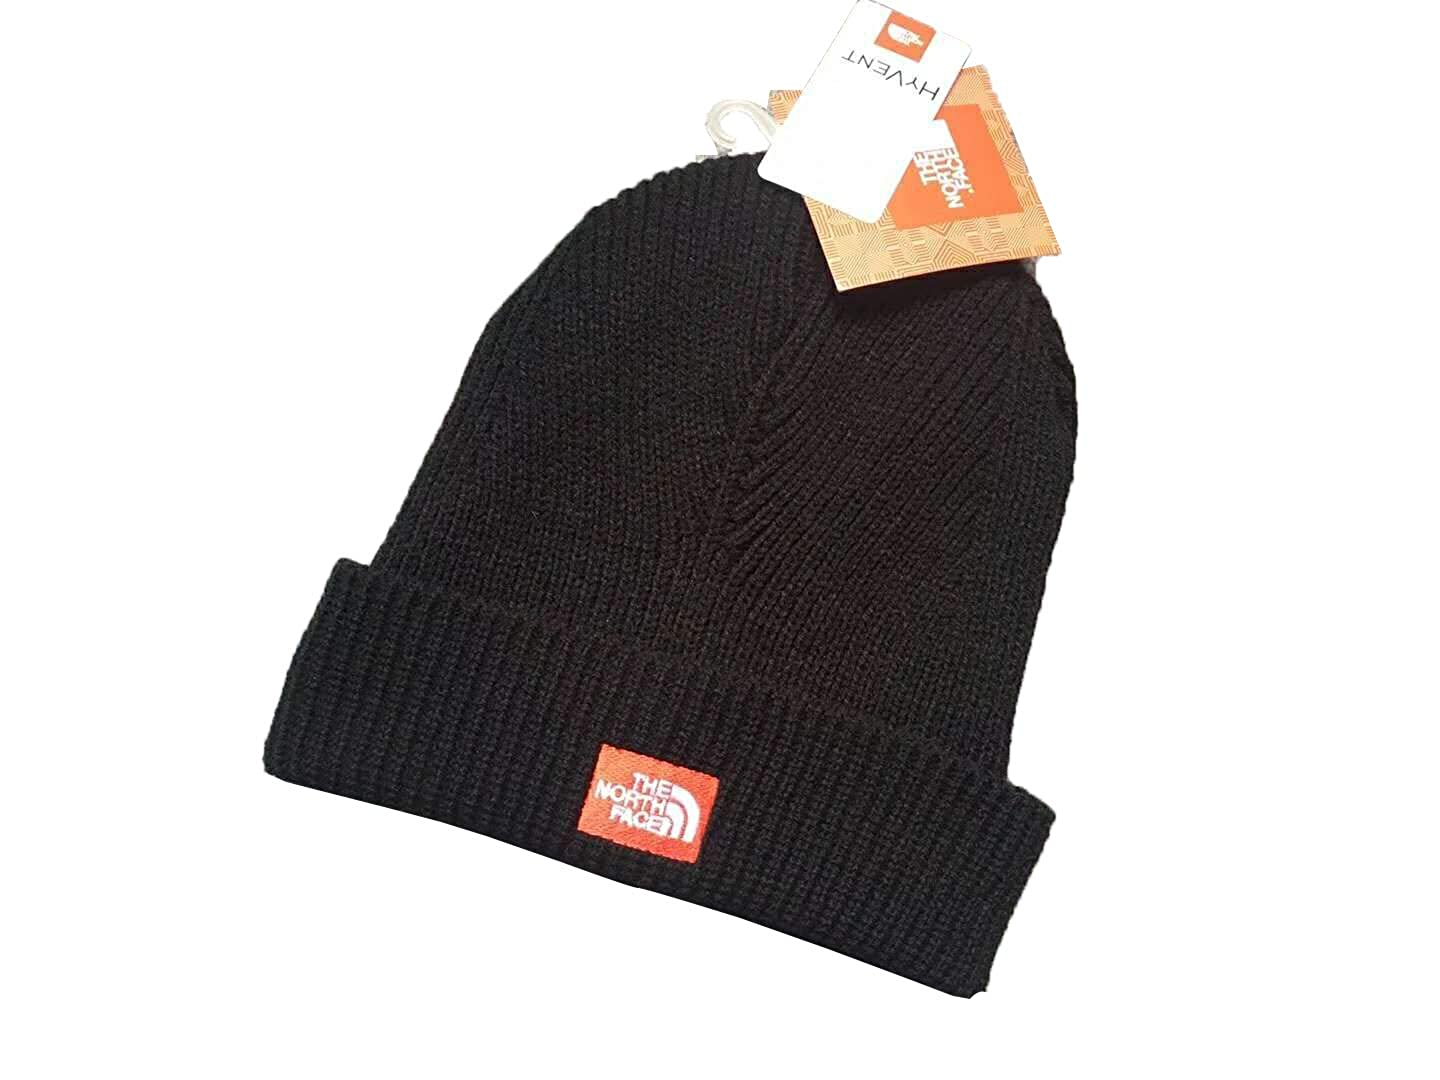 The North Face Warm Winter Hats Thick Knit Skully Beanie Cap Daily ... 2cef1fbb77b